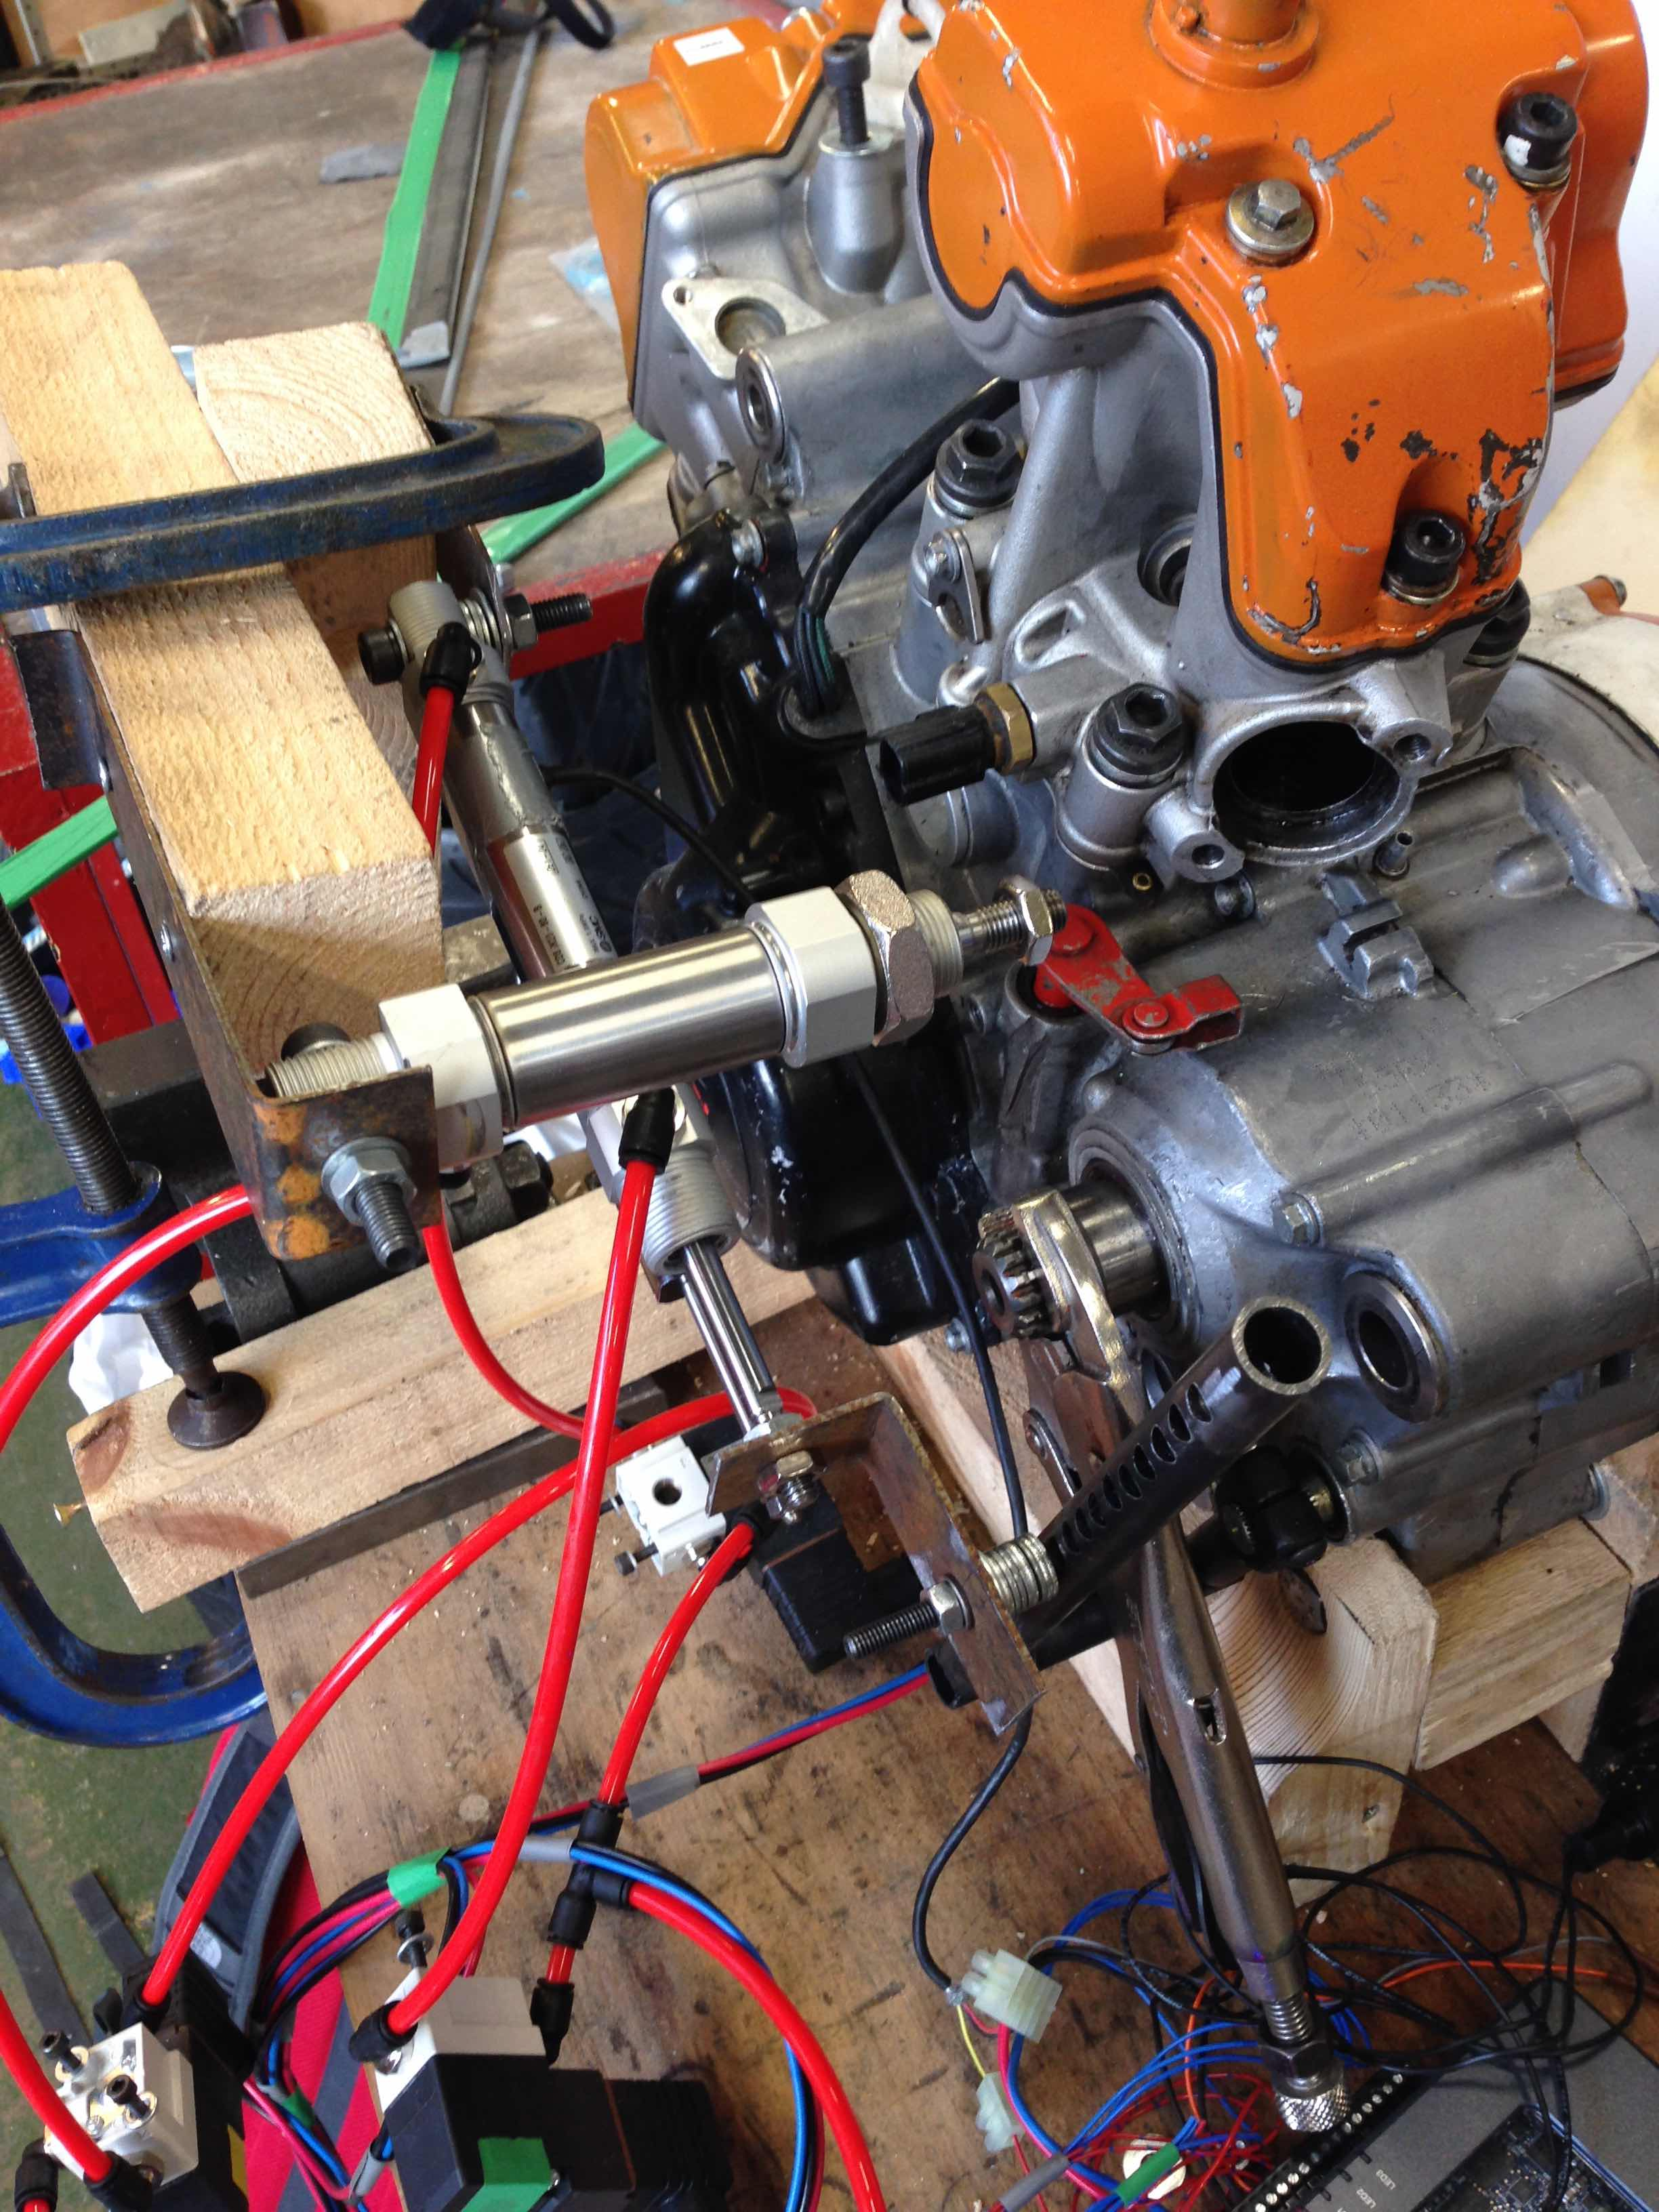 Pneumatic shifting system for a combustion Formula Student